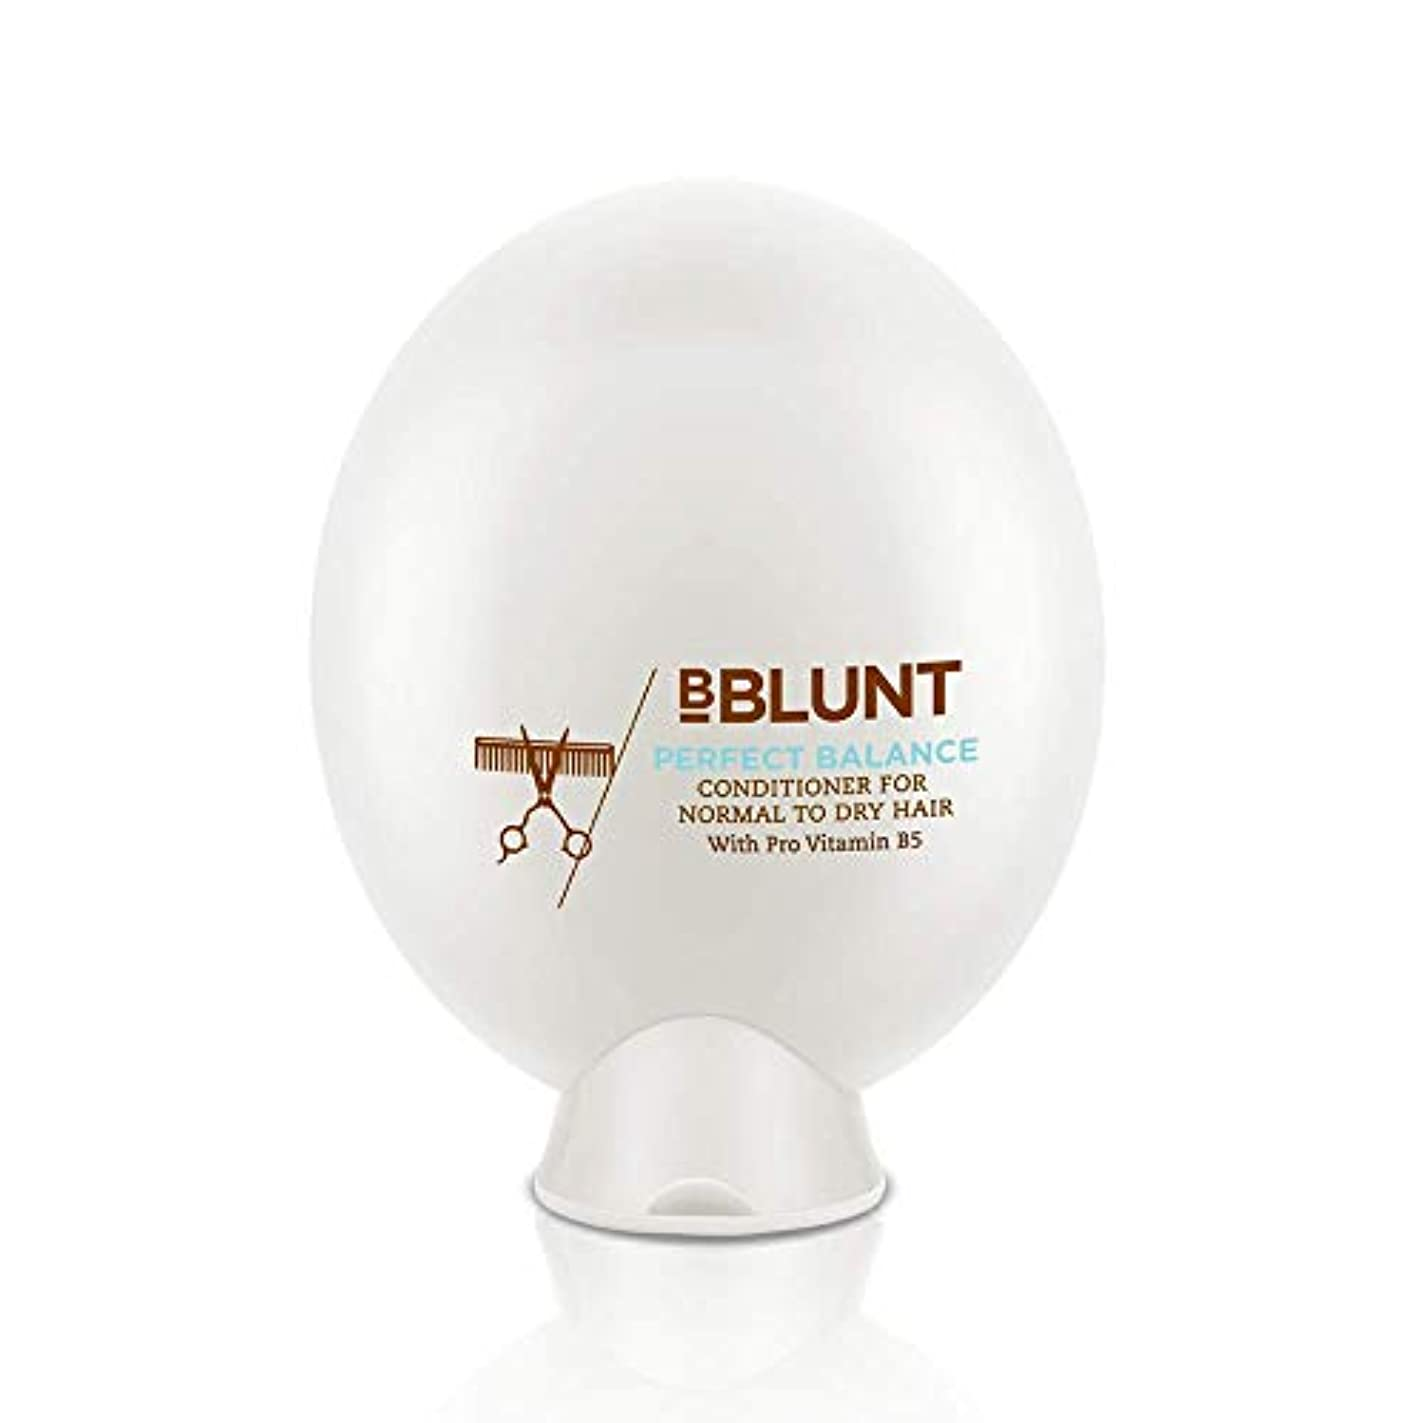 チャンピオンシップキャプチャーいつもBBLUNT Perfect Balance Conditioner for Normal To Dry Hair, 200g (Provitamin B5)